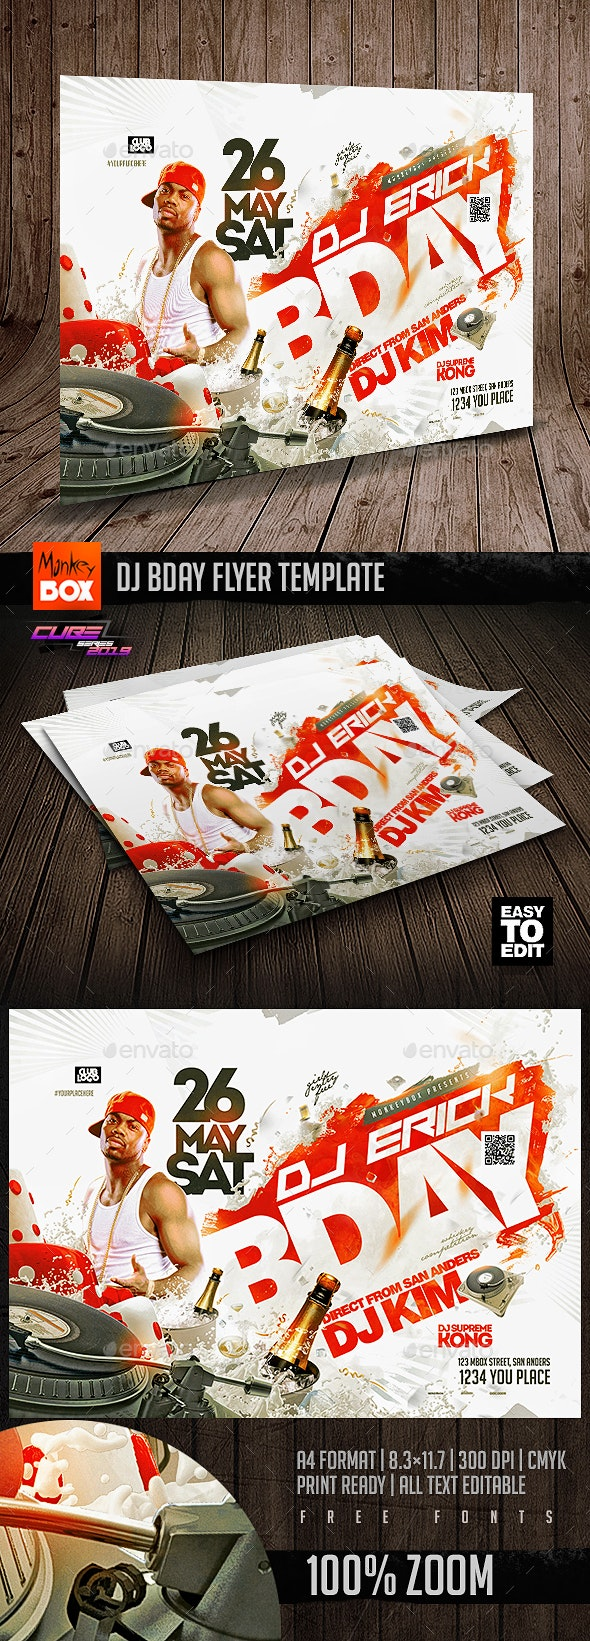 Dj Bday Flyer Template - Clubs & Parties Events